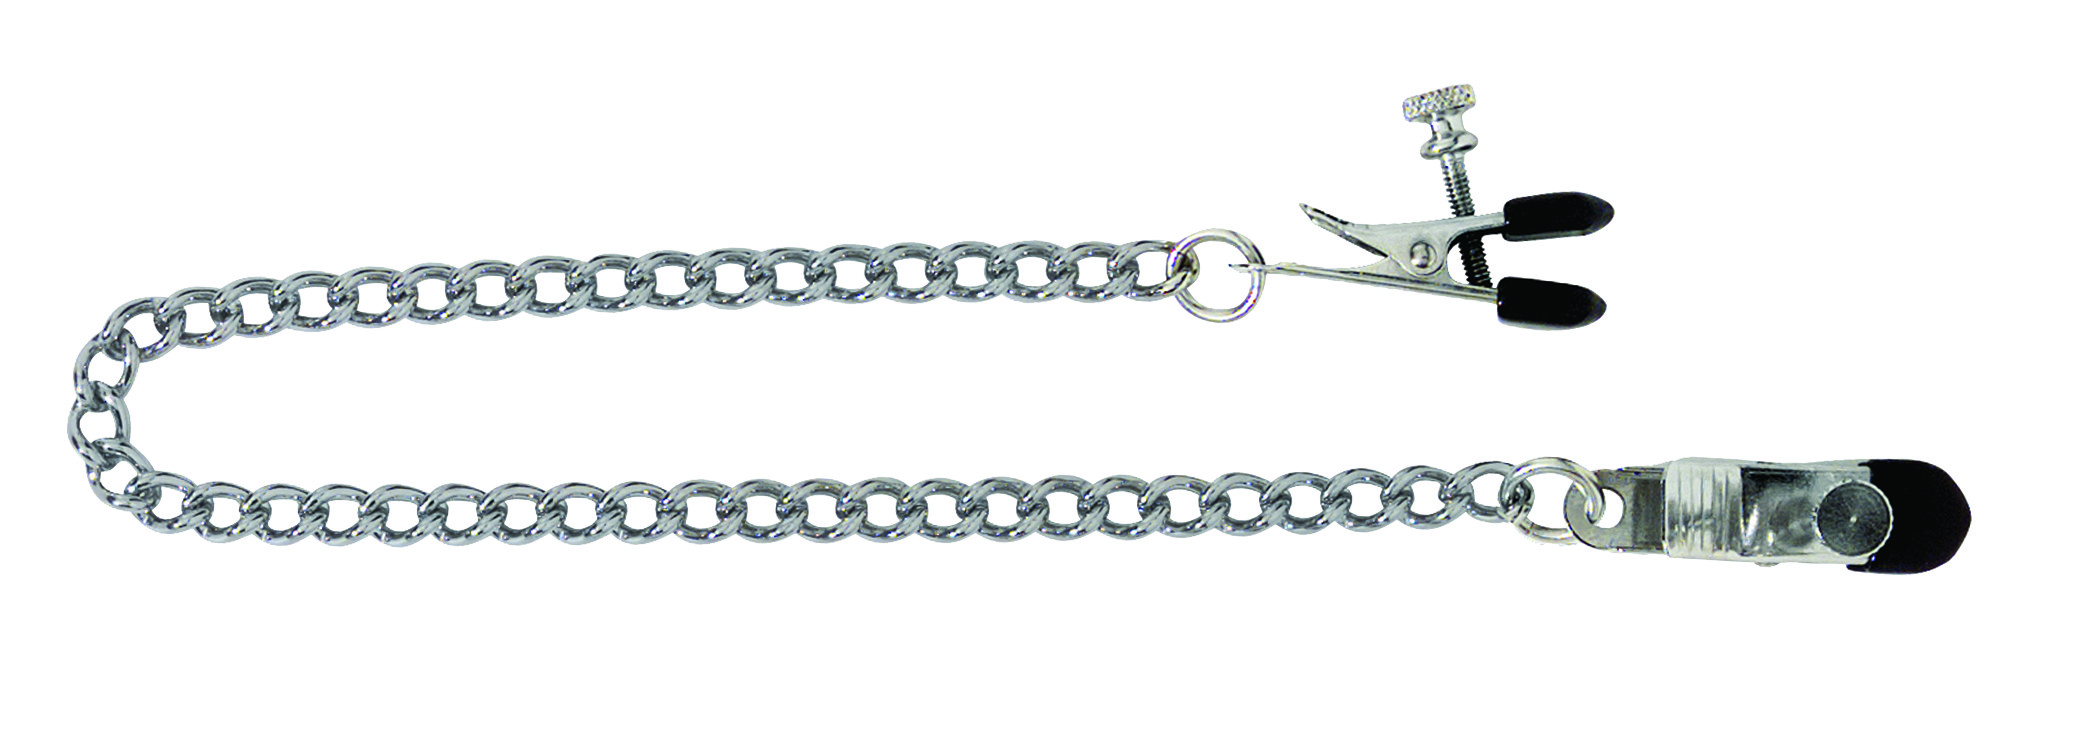 Adjustable Broad Tip Clamps - Link Chain